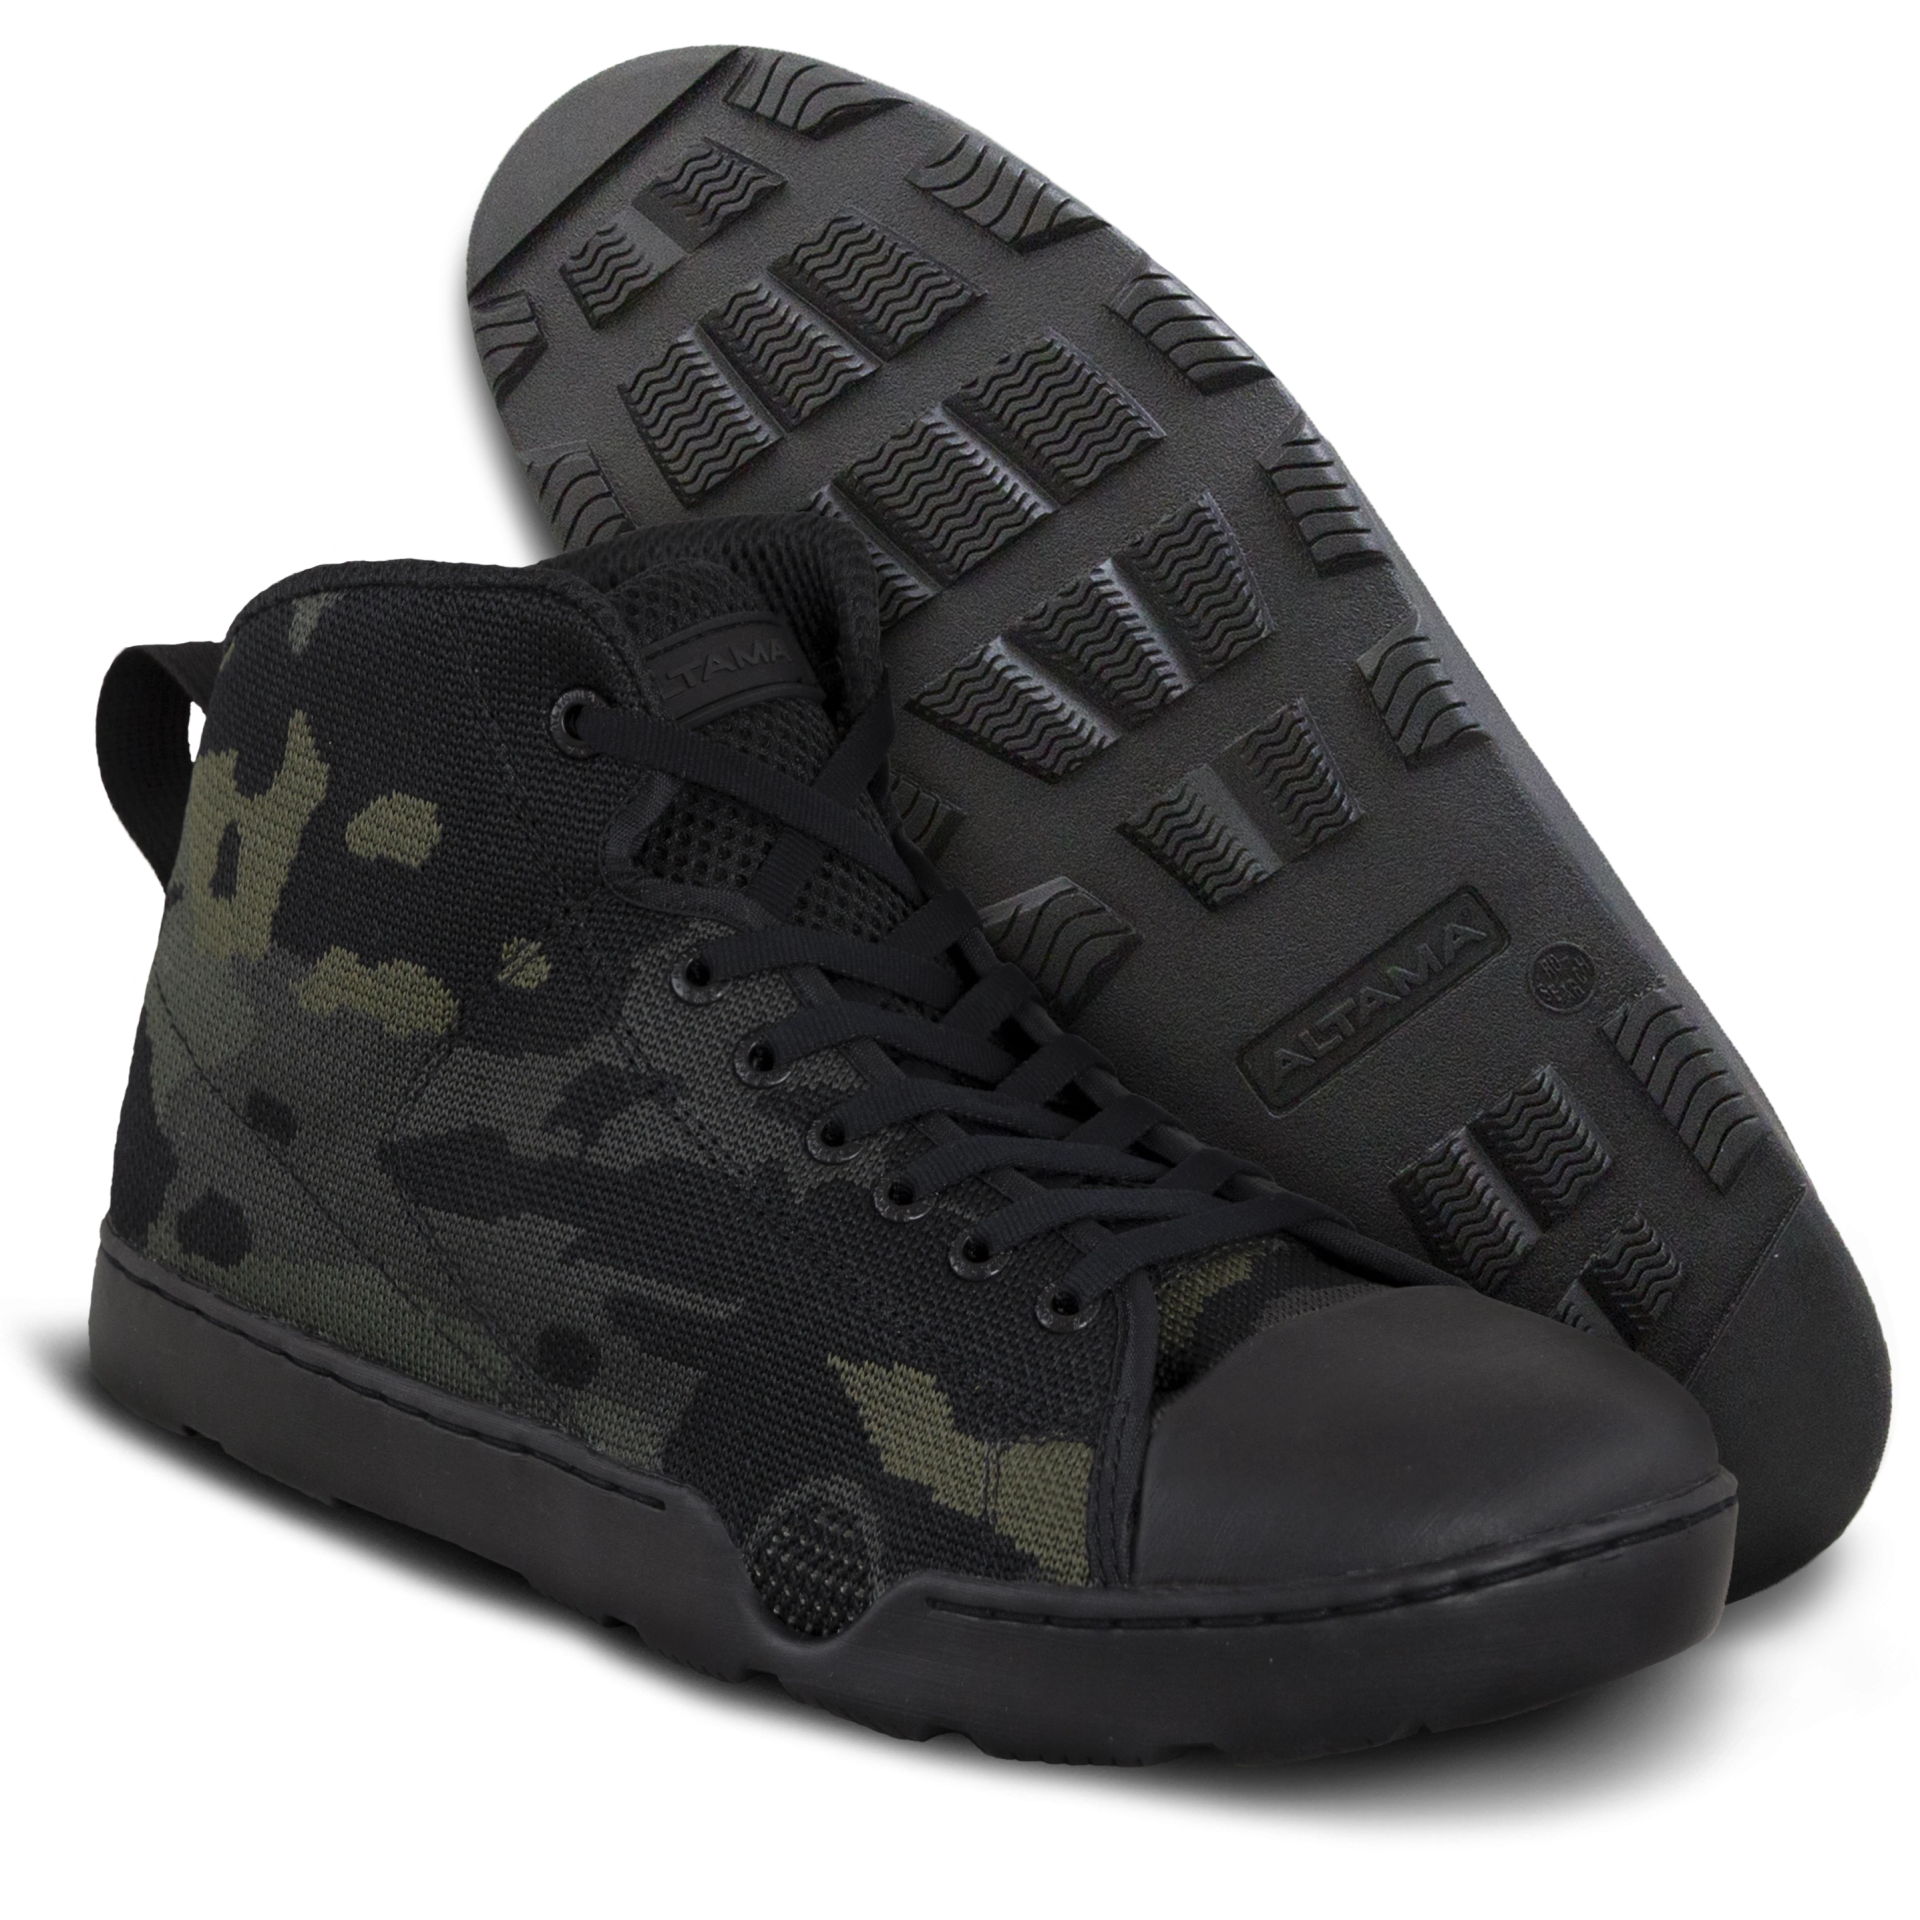 Urban Mid - Black Multicam®